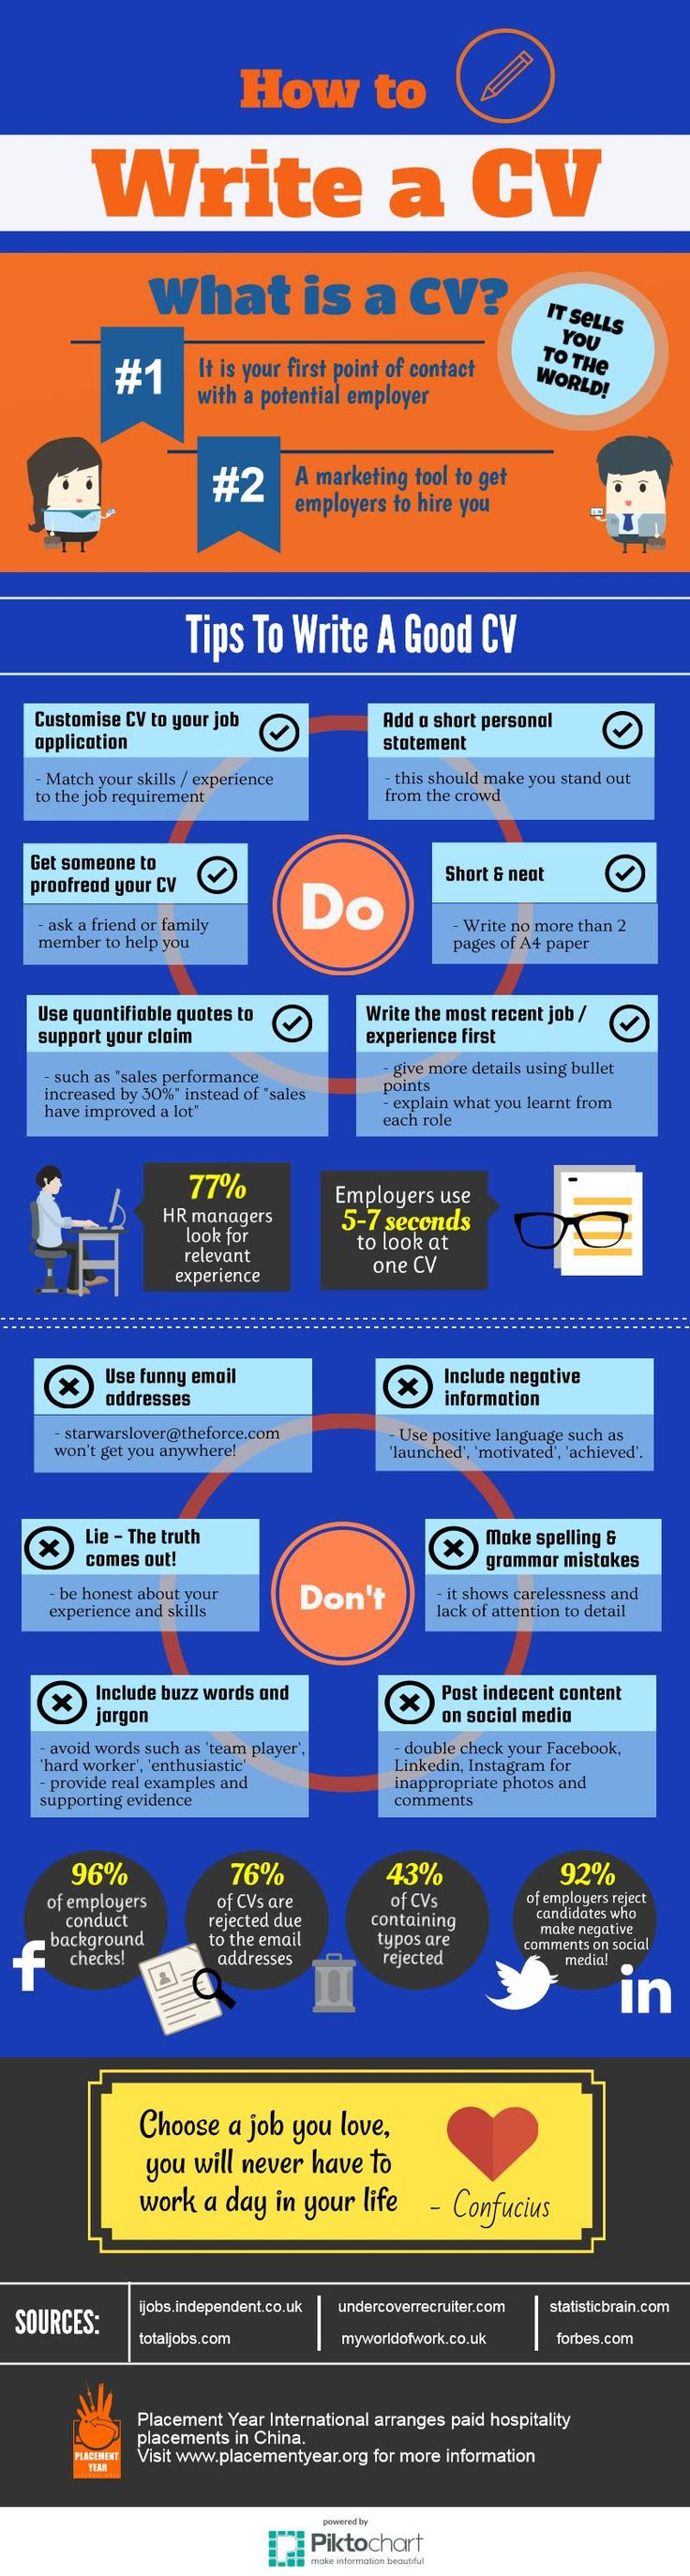 best ideas about writing a cv cv infographic how to write a cv infographic